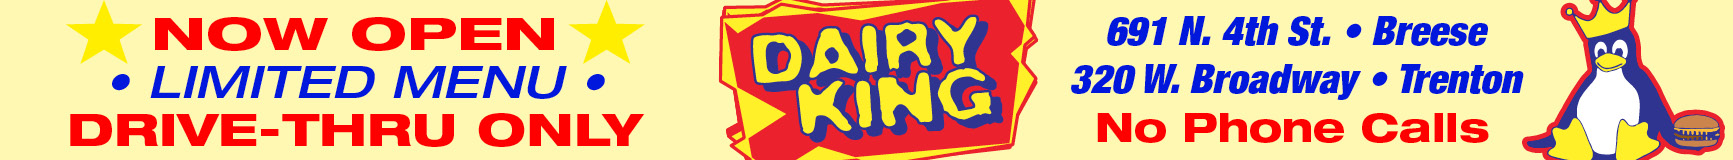 Dairy King Open May 1